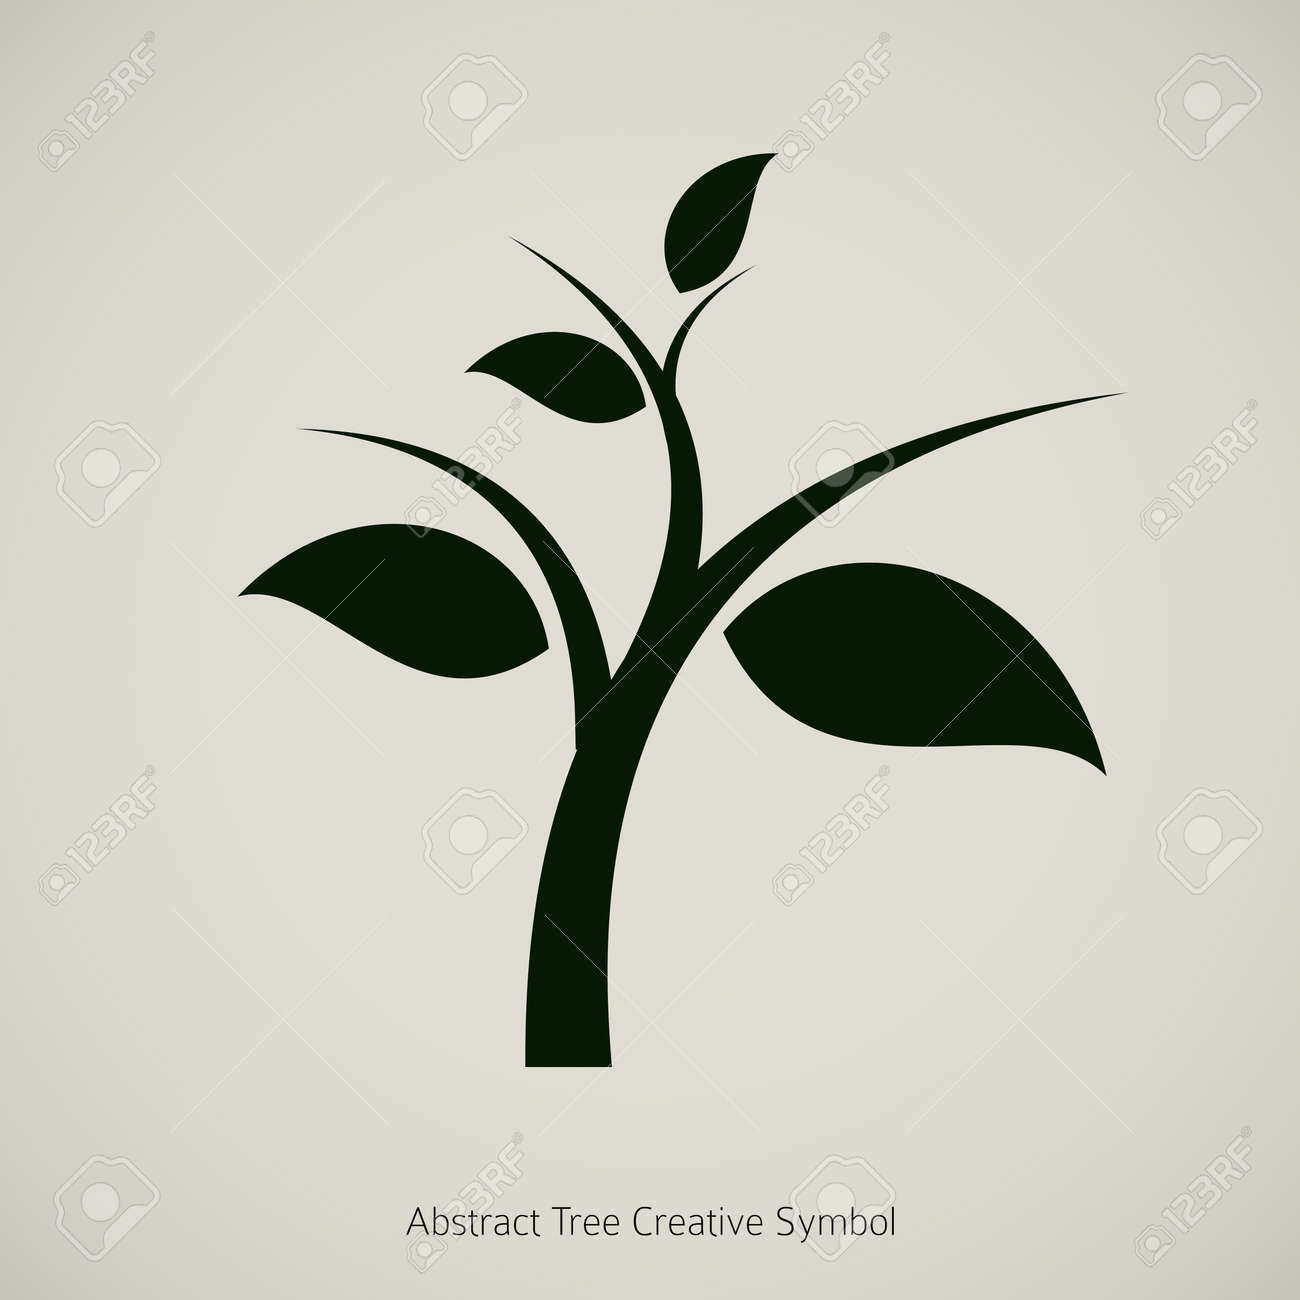 Tree Plant Illustration Nature Abstract Design Symbol Royalty Free Cliparts Vectors And Stock Illustration Image 14274187